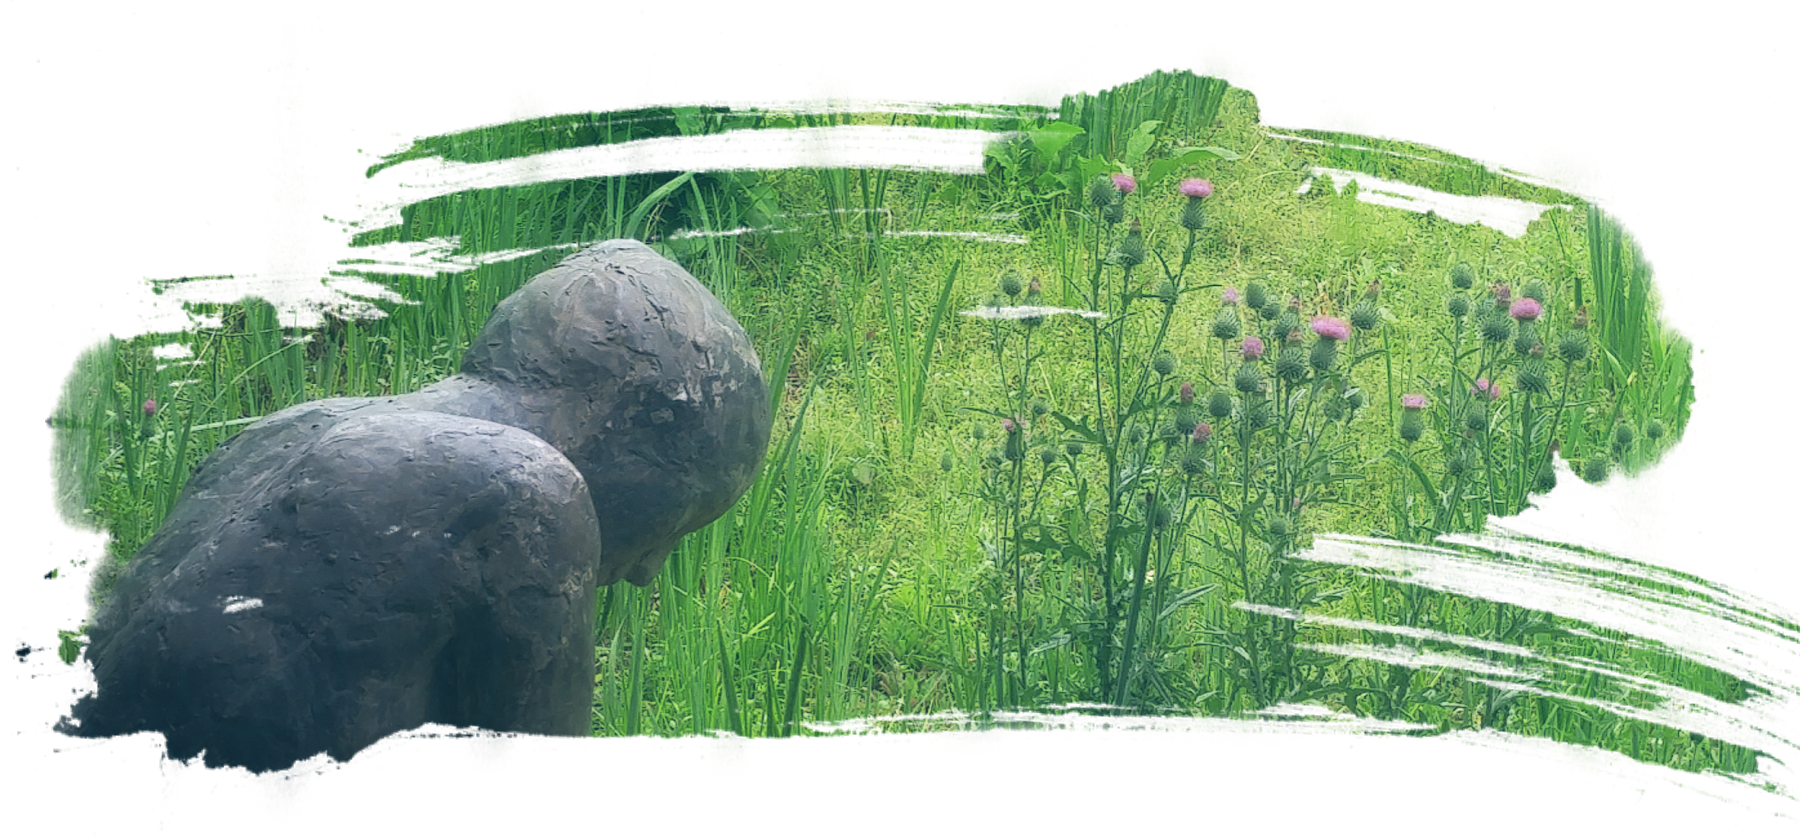 a brushstroke shaped image with a grey femme body stone statue kneeling in front of bright green grass and a patch of purple topped thistles